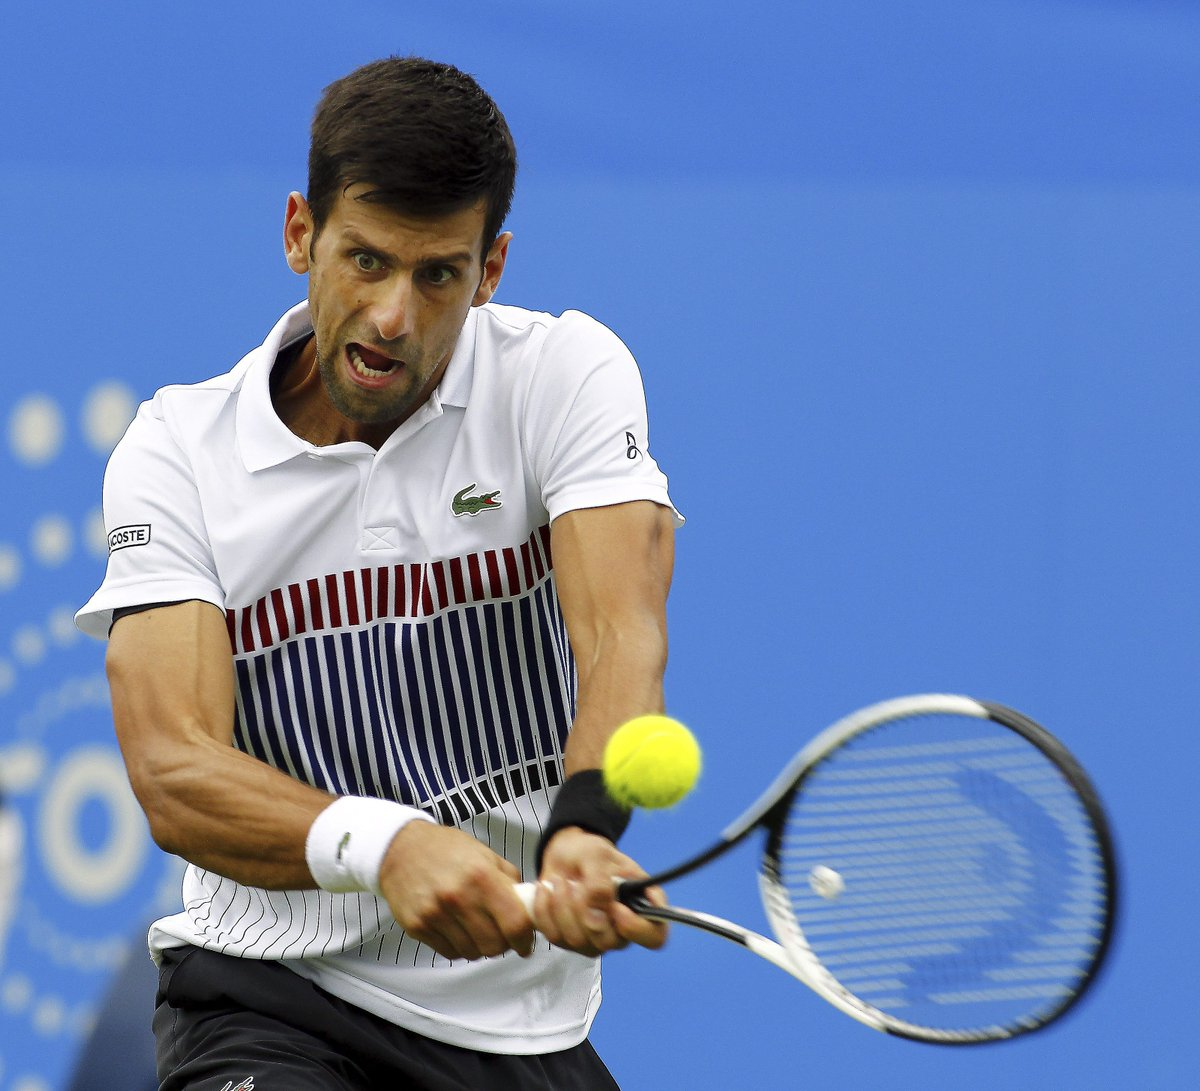 Not so easy win for Novak #Djokovic vs Donald Young 6-2 7-6 to advance...